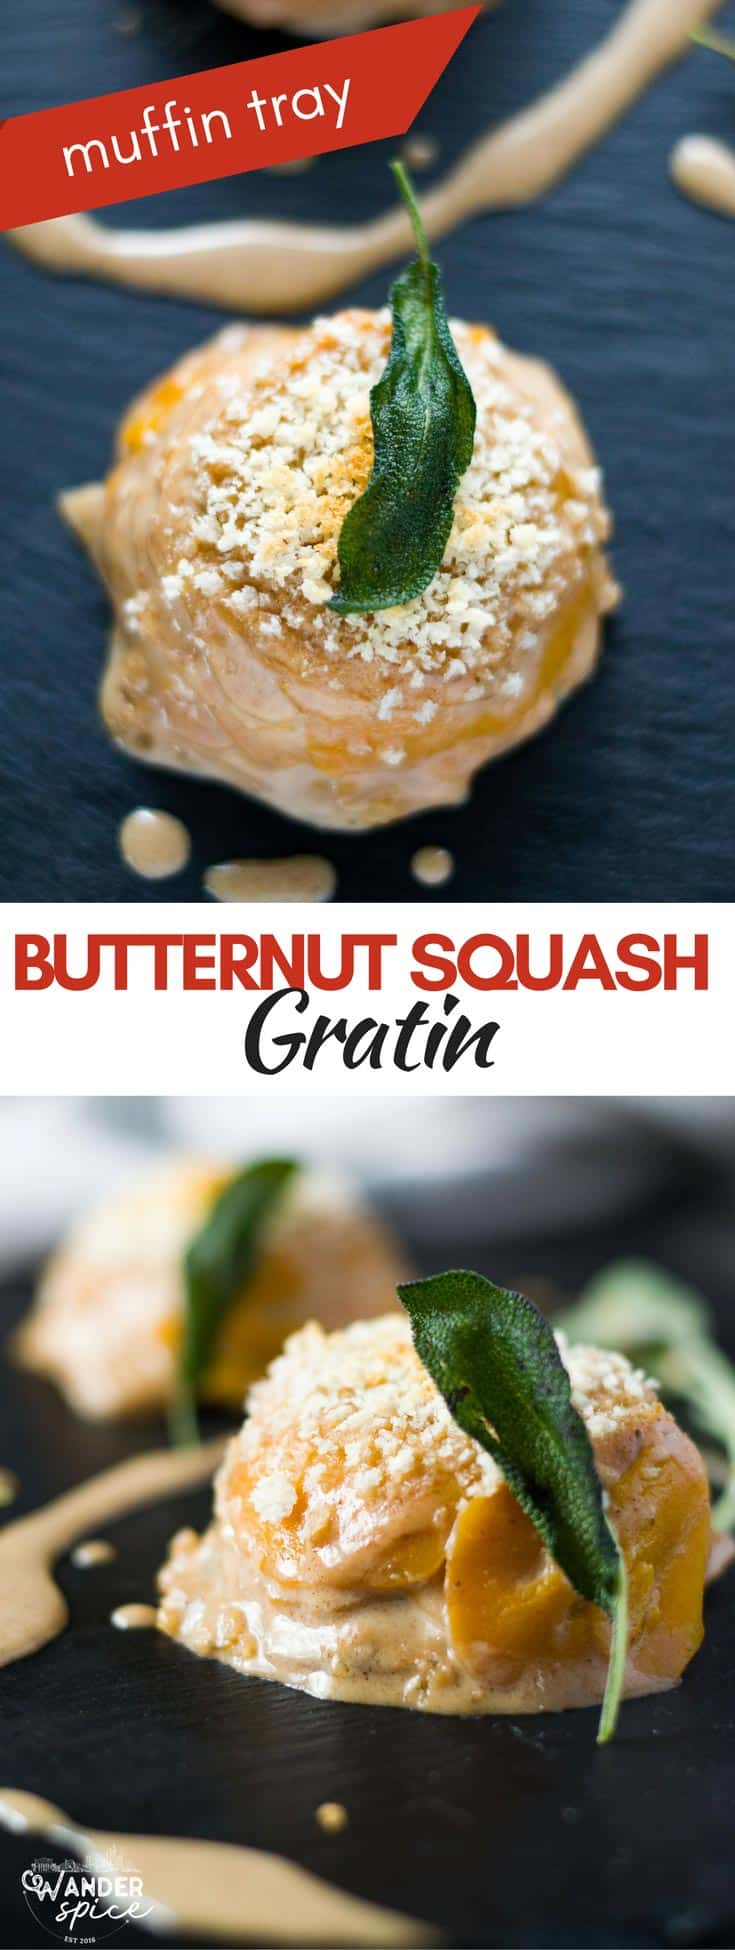 Butternut Squash Gratin with Panko Breadcrumbs and Fried Sage